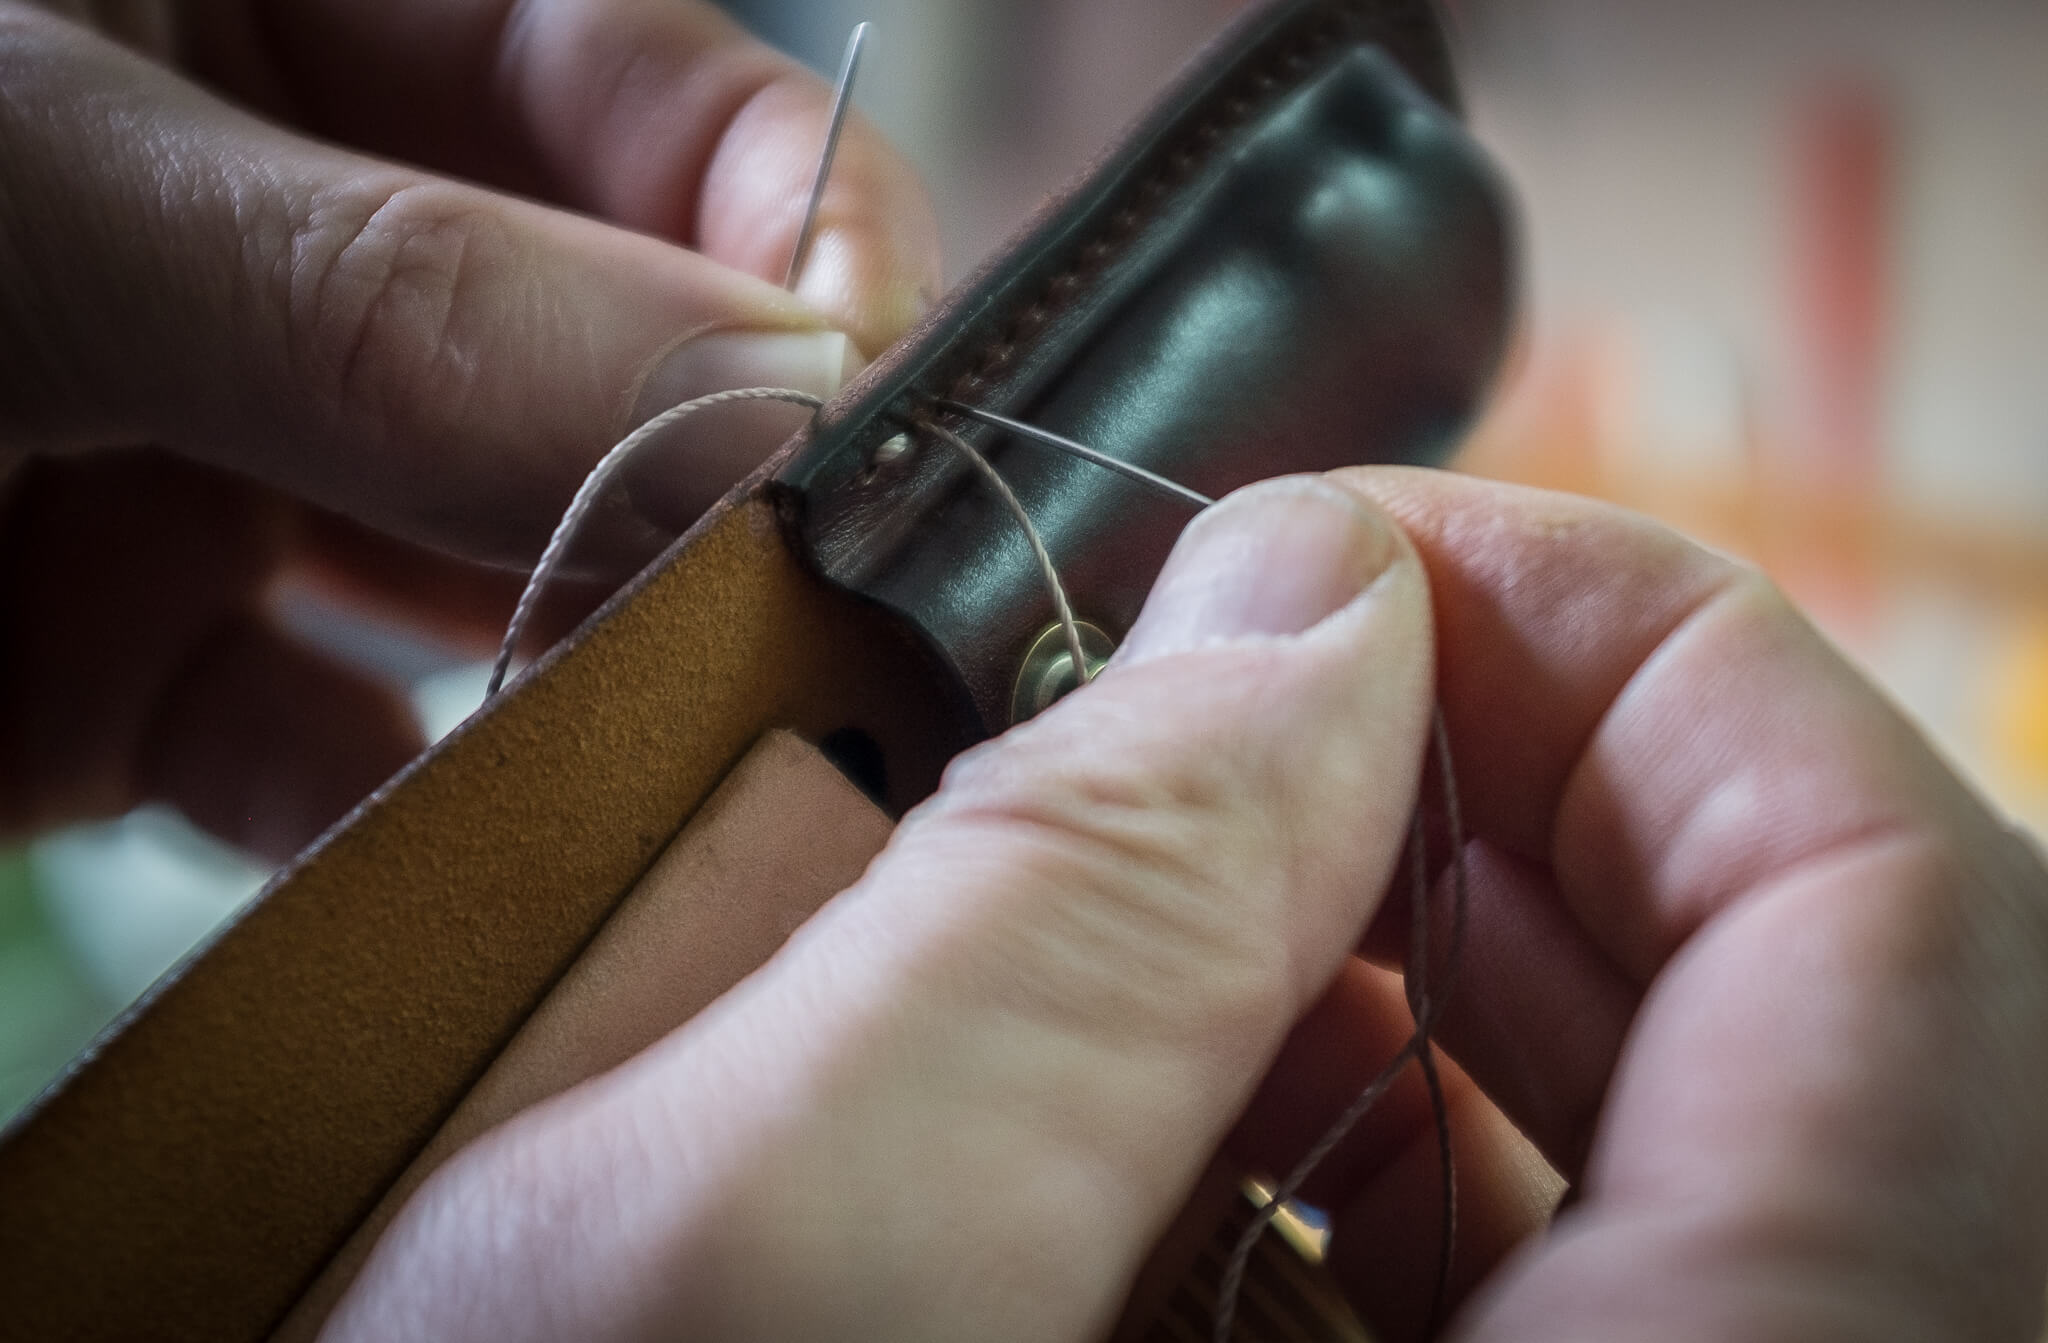 Handstitching the leather knife sheath | Duke & Sons Leather